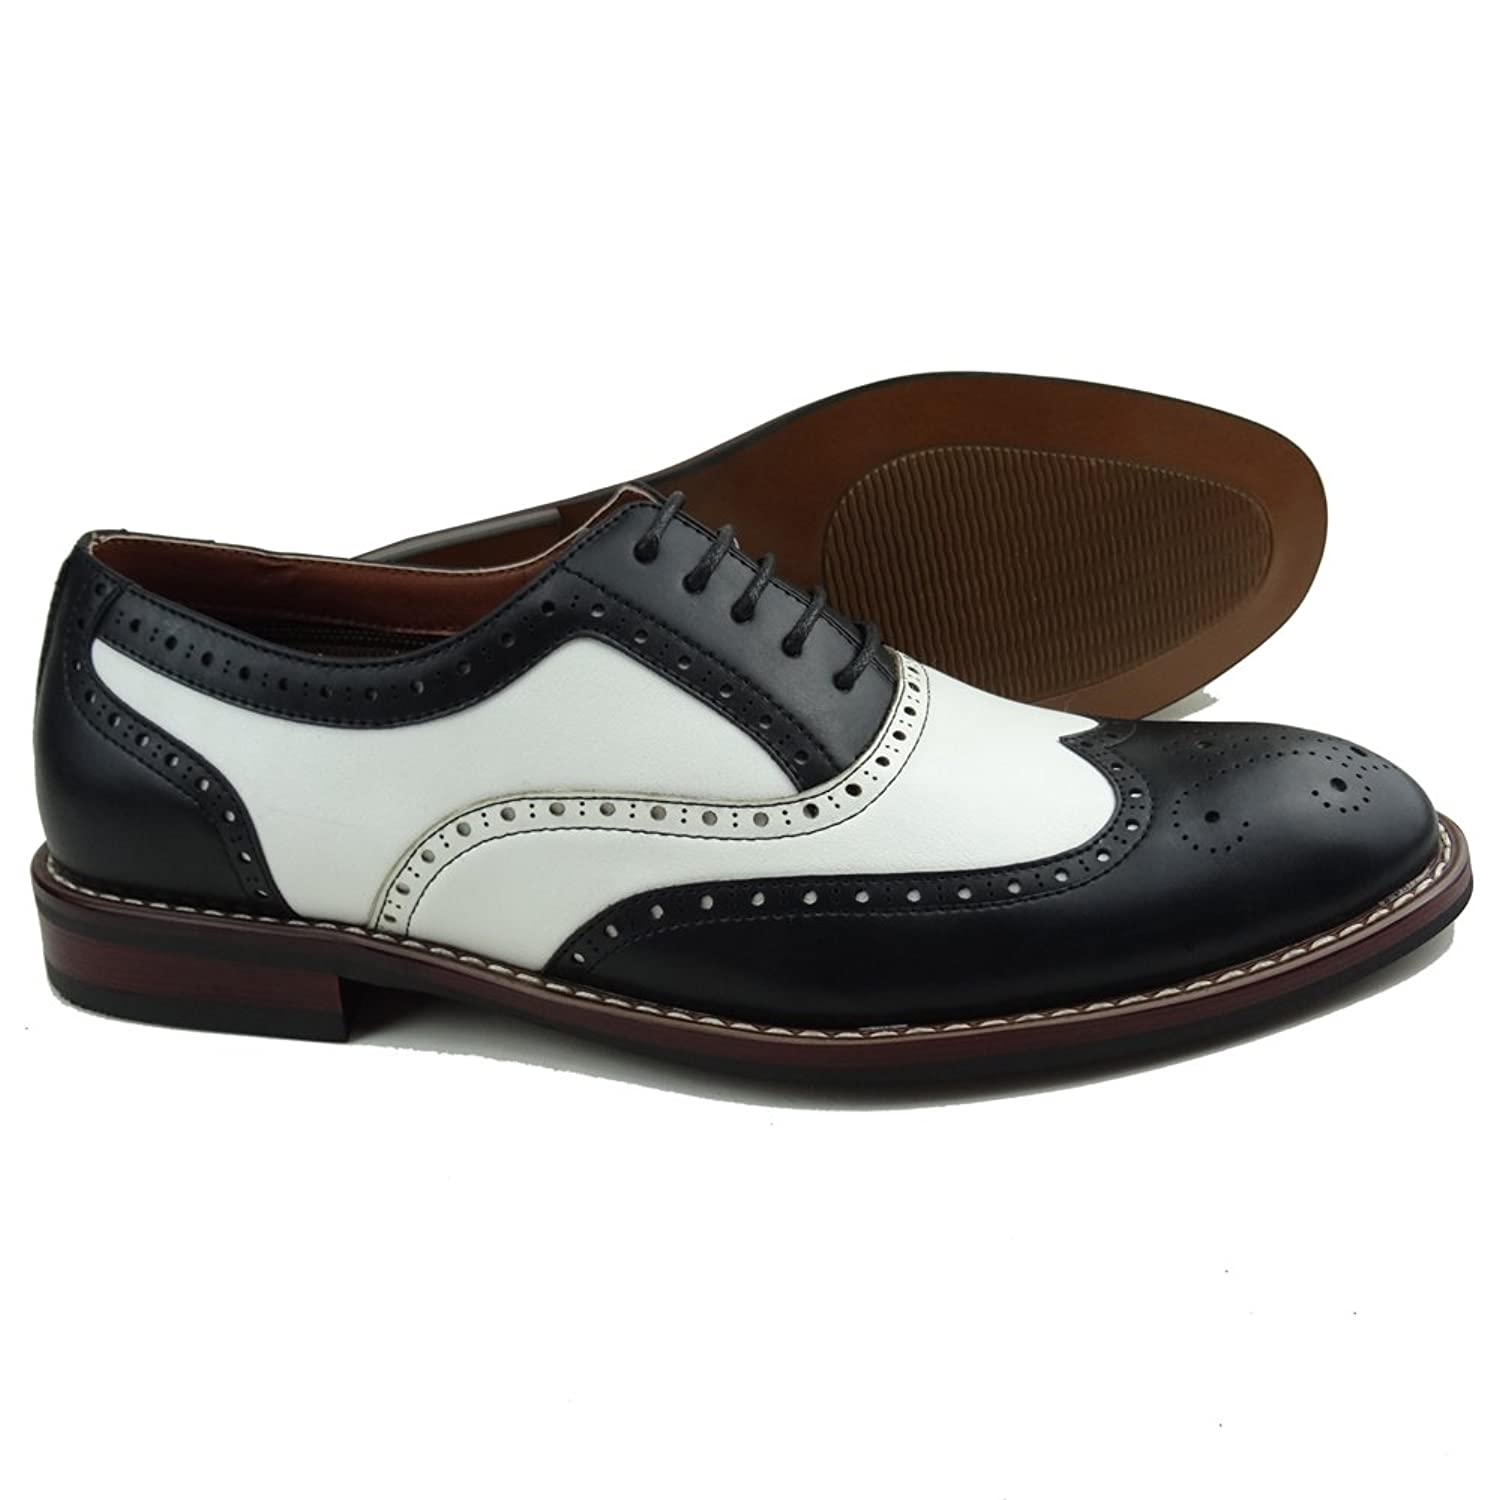 1920s Gangster – How to Dress Like Al Capone  Mens Black White Lace Up Wing Tip Perforated Oxford Dress Shoes $34.99 AT vintagedancer.com